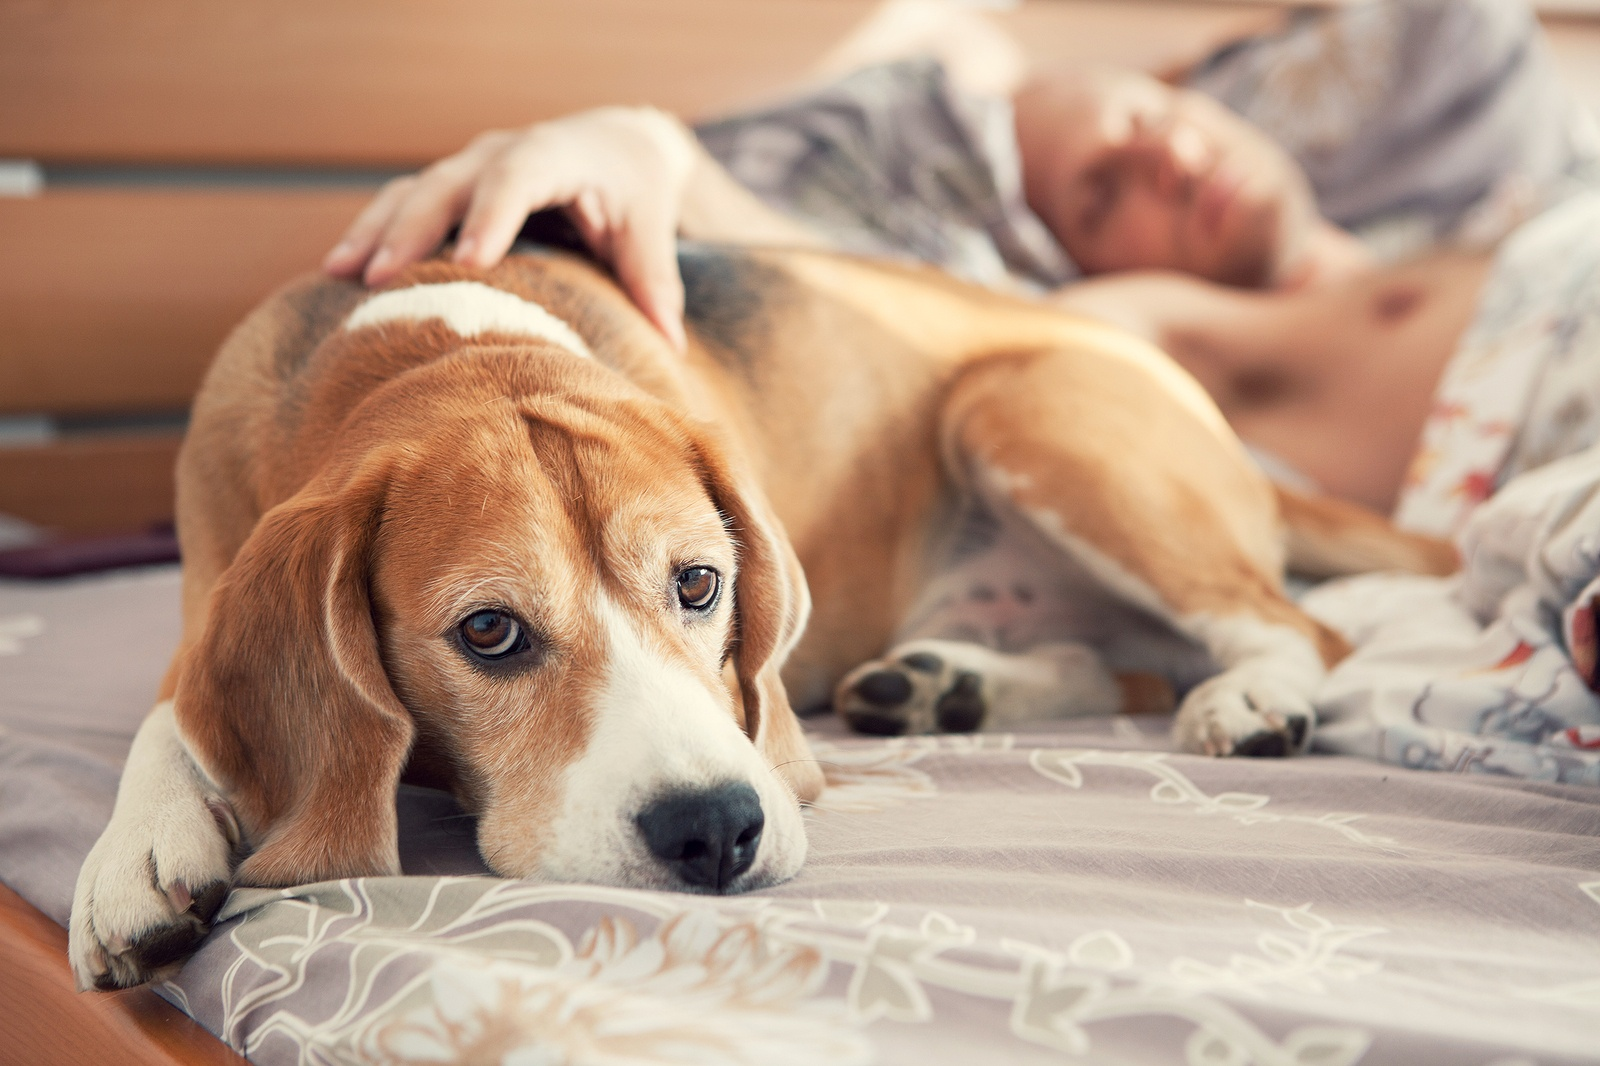 bigstock-Beagle-Lying-In-Bed-With-His-S-103489736.jpg